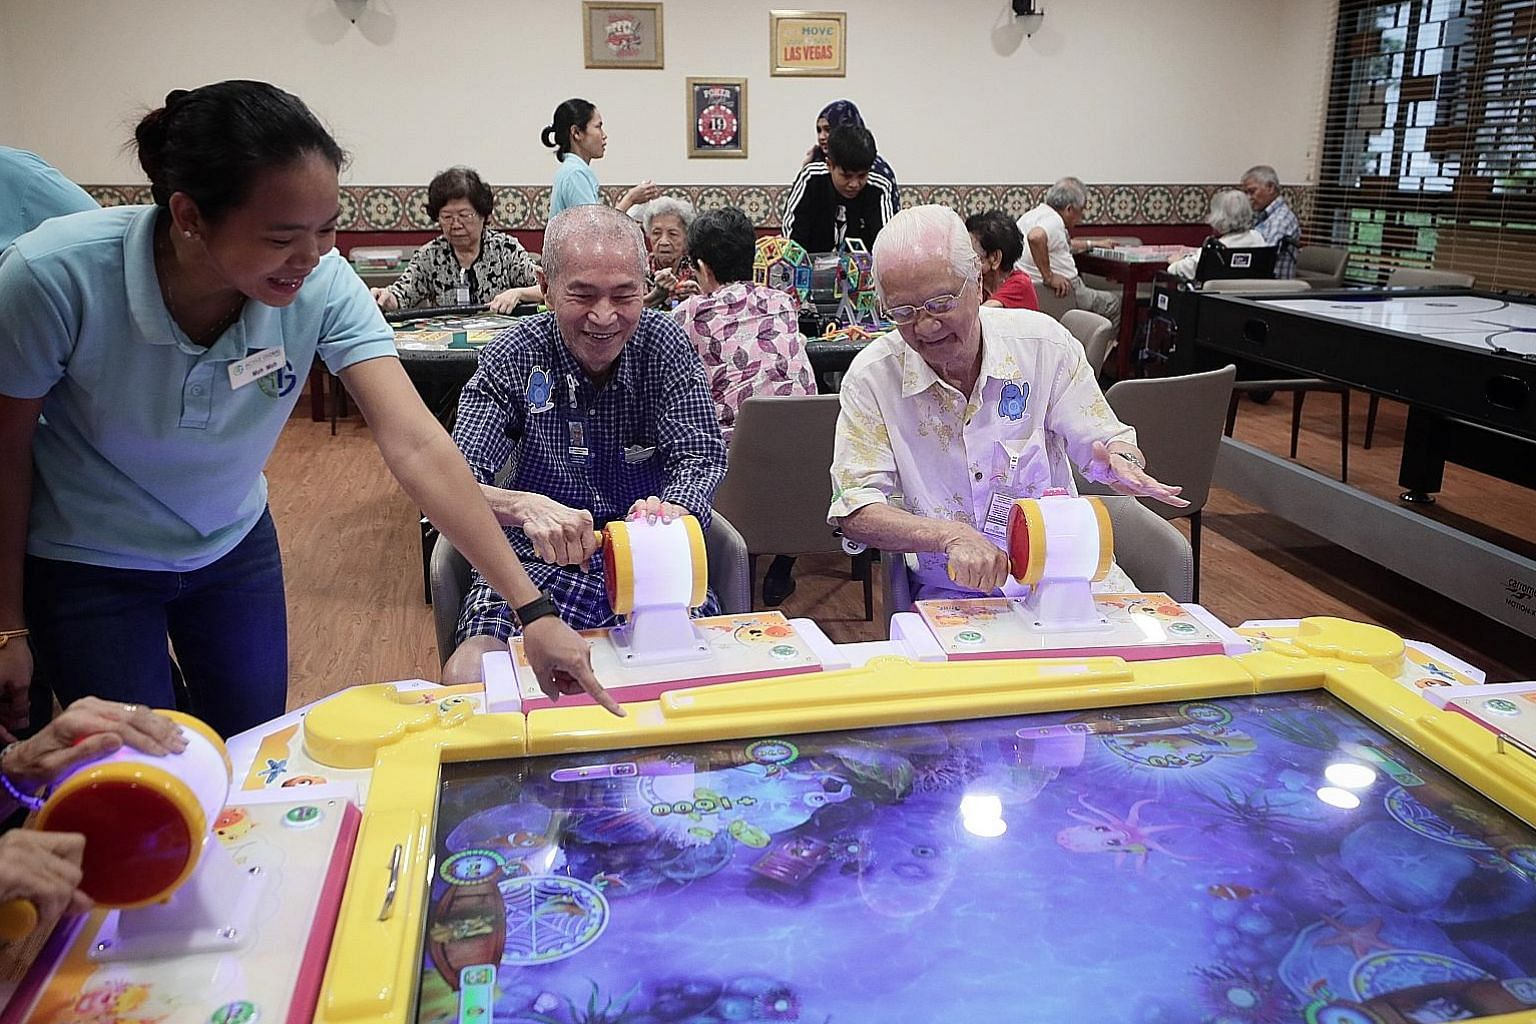 Retiree Robin Liow (centre), 72, who has Parkinson's disease and suffered a hip fracture last year, playing an arcade game with fellow retiree Teo Cheng Lok, 85, in the games room at the senior care centre in Ghim Moh. They are guided by Ms Moh Moh,